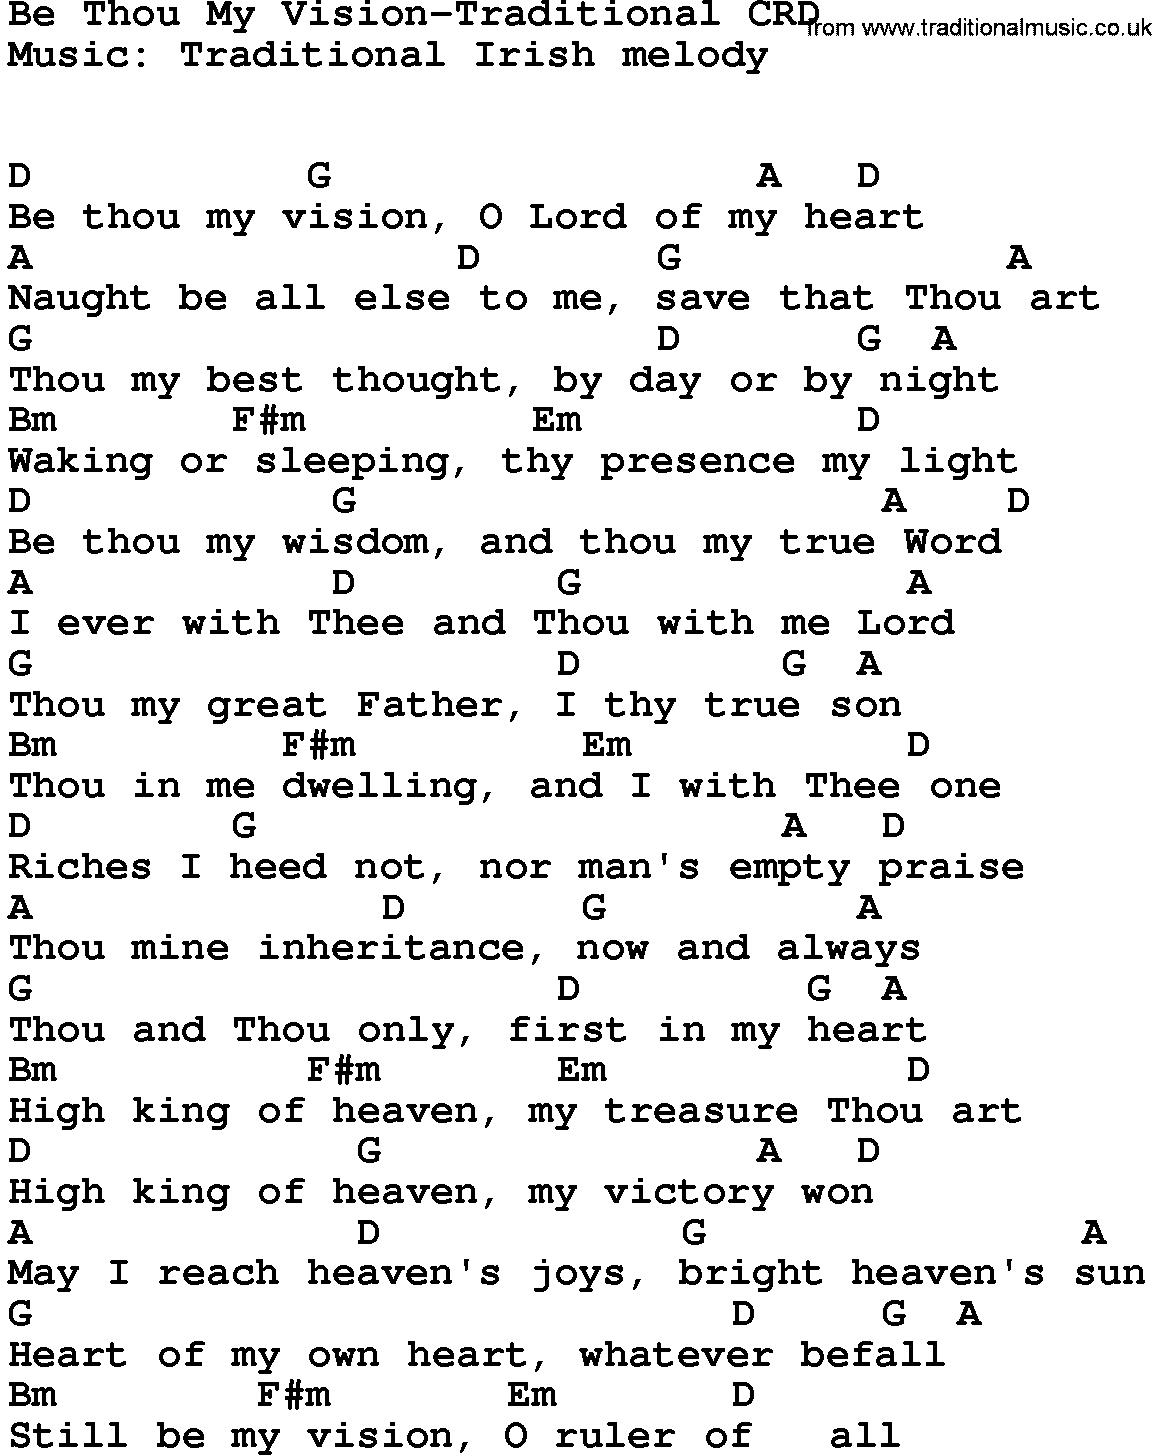 Be Thou My Vision Chords Gospel Song Be Thou My Vision Traditional Lyrics And Chords